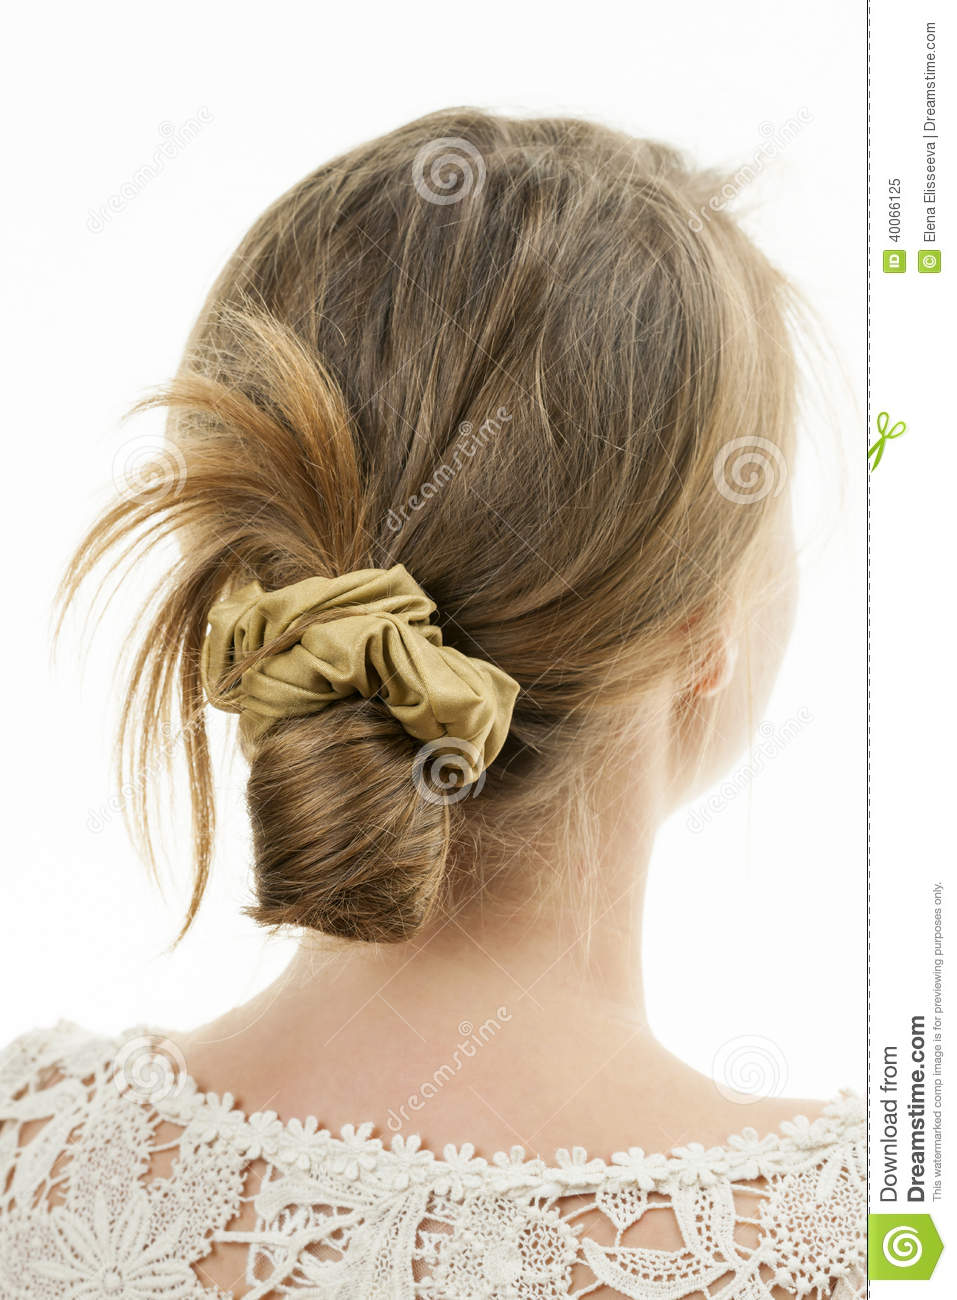 Young Woman With Casual Messy Bun Hairdo Stock Image Image Of